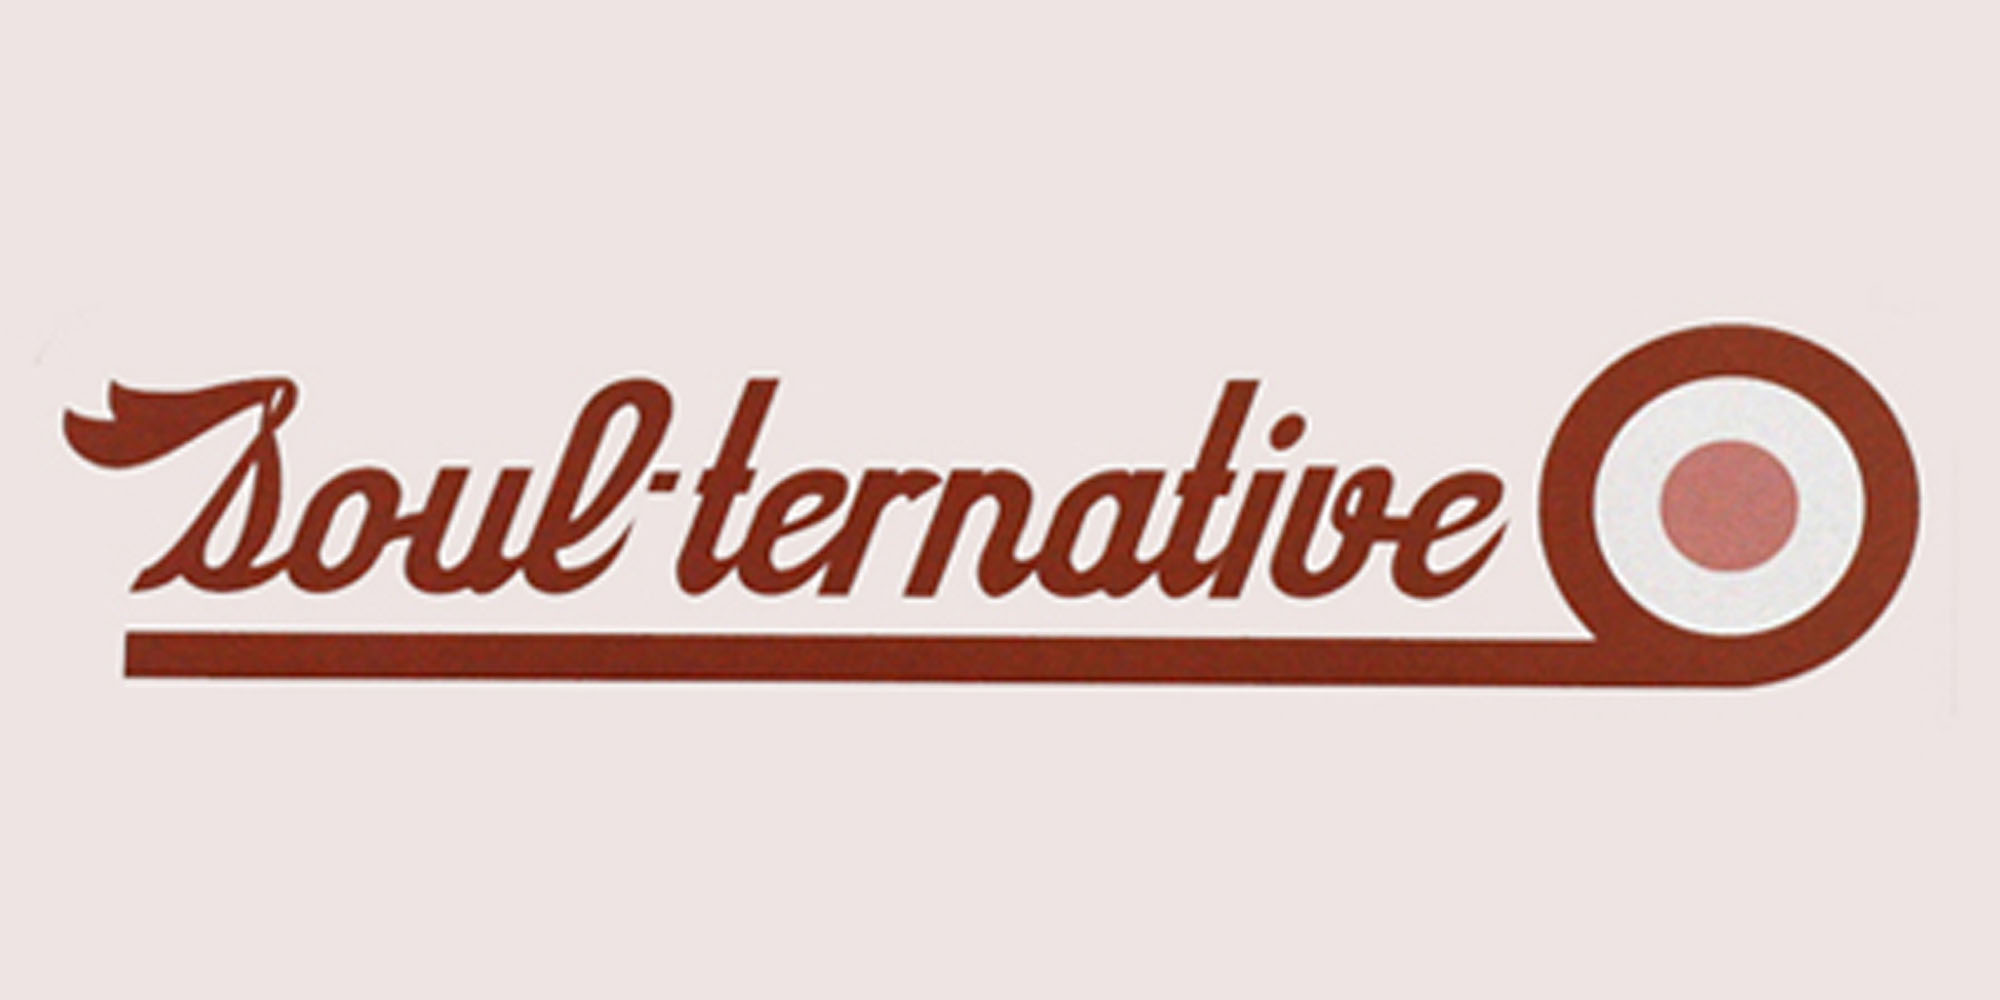 Soul-ternative Logo Design